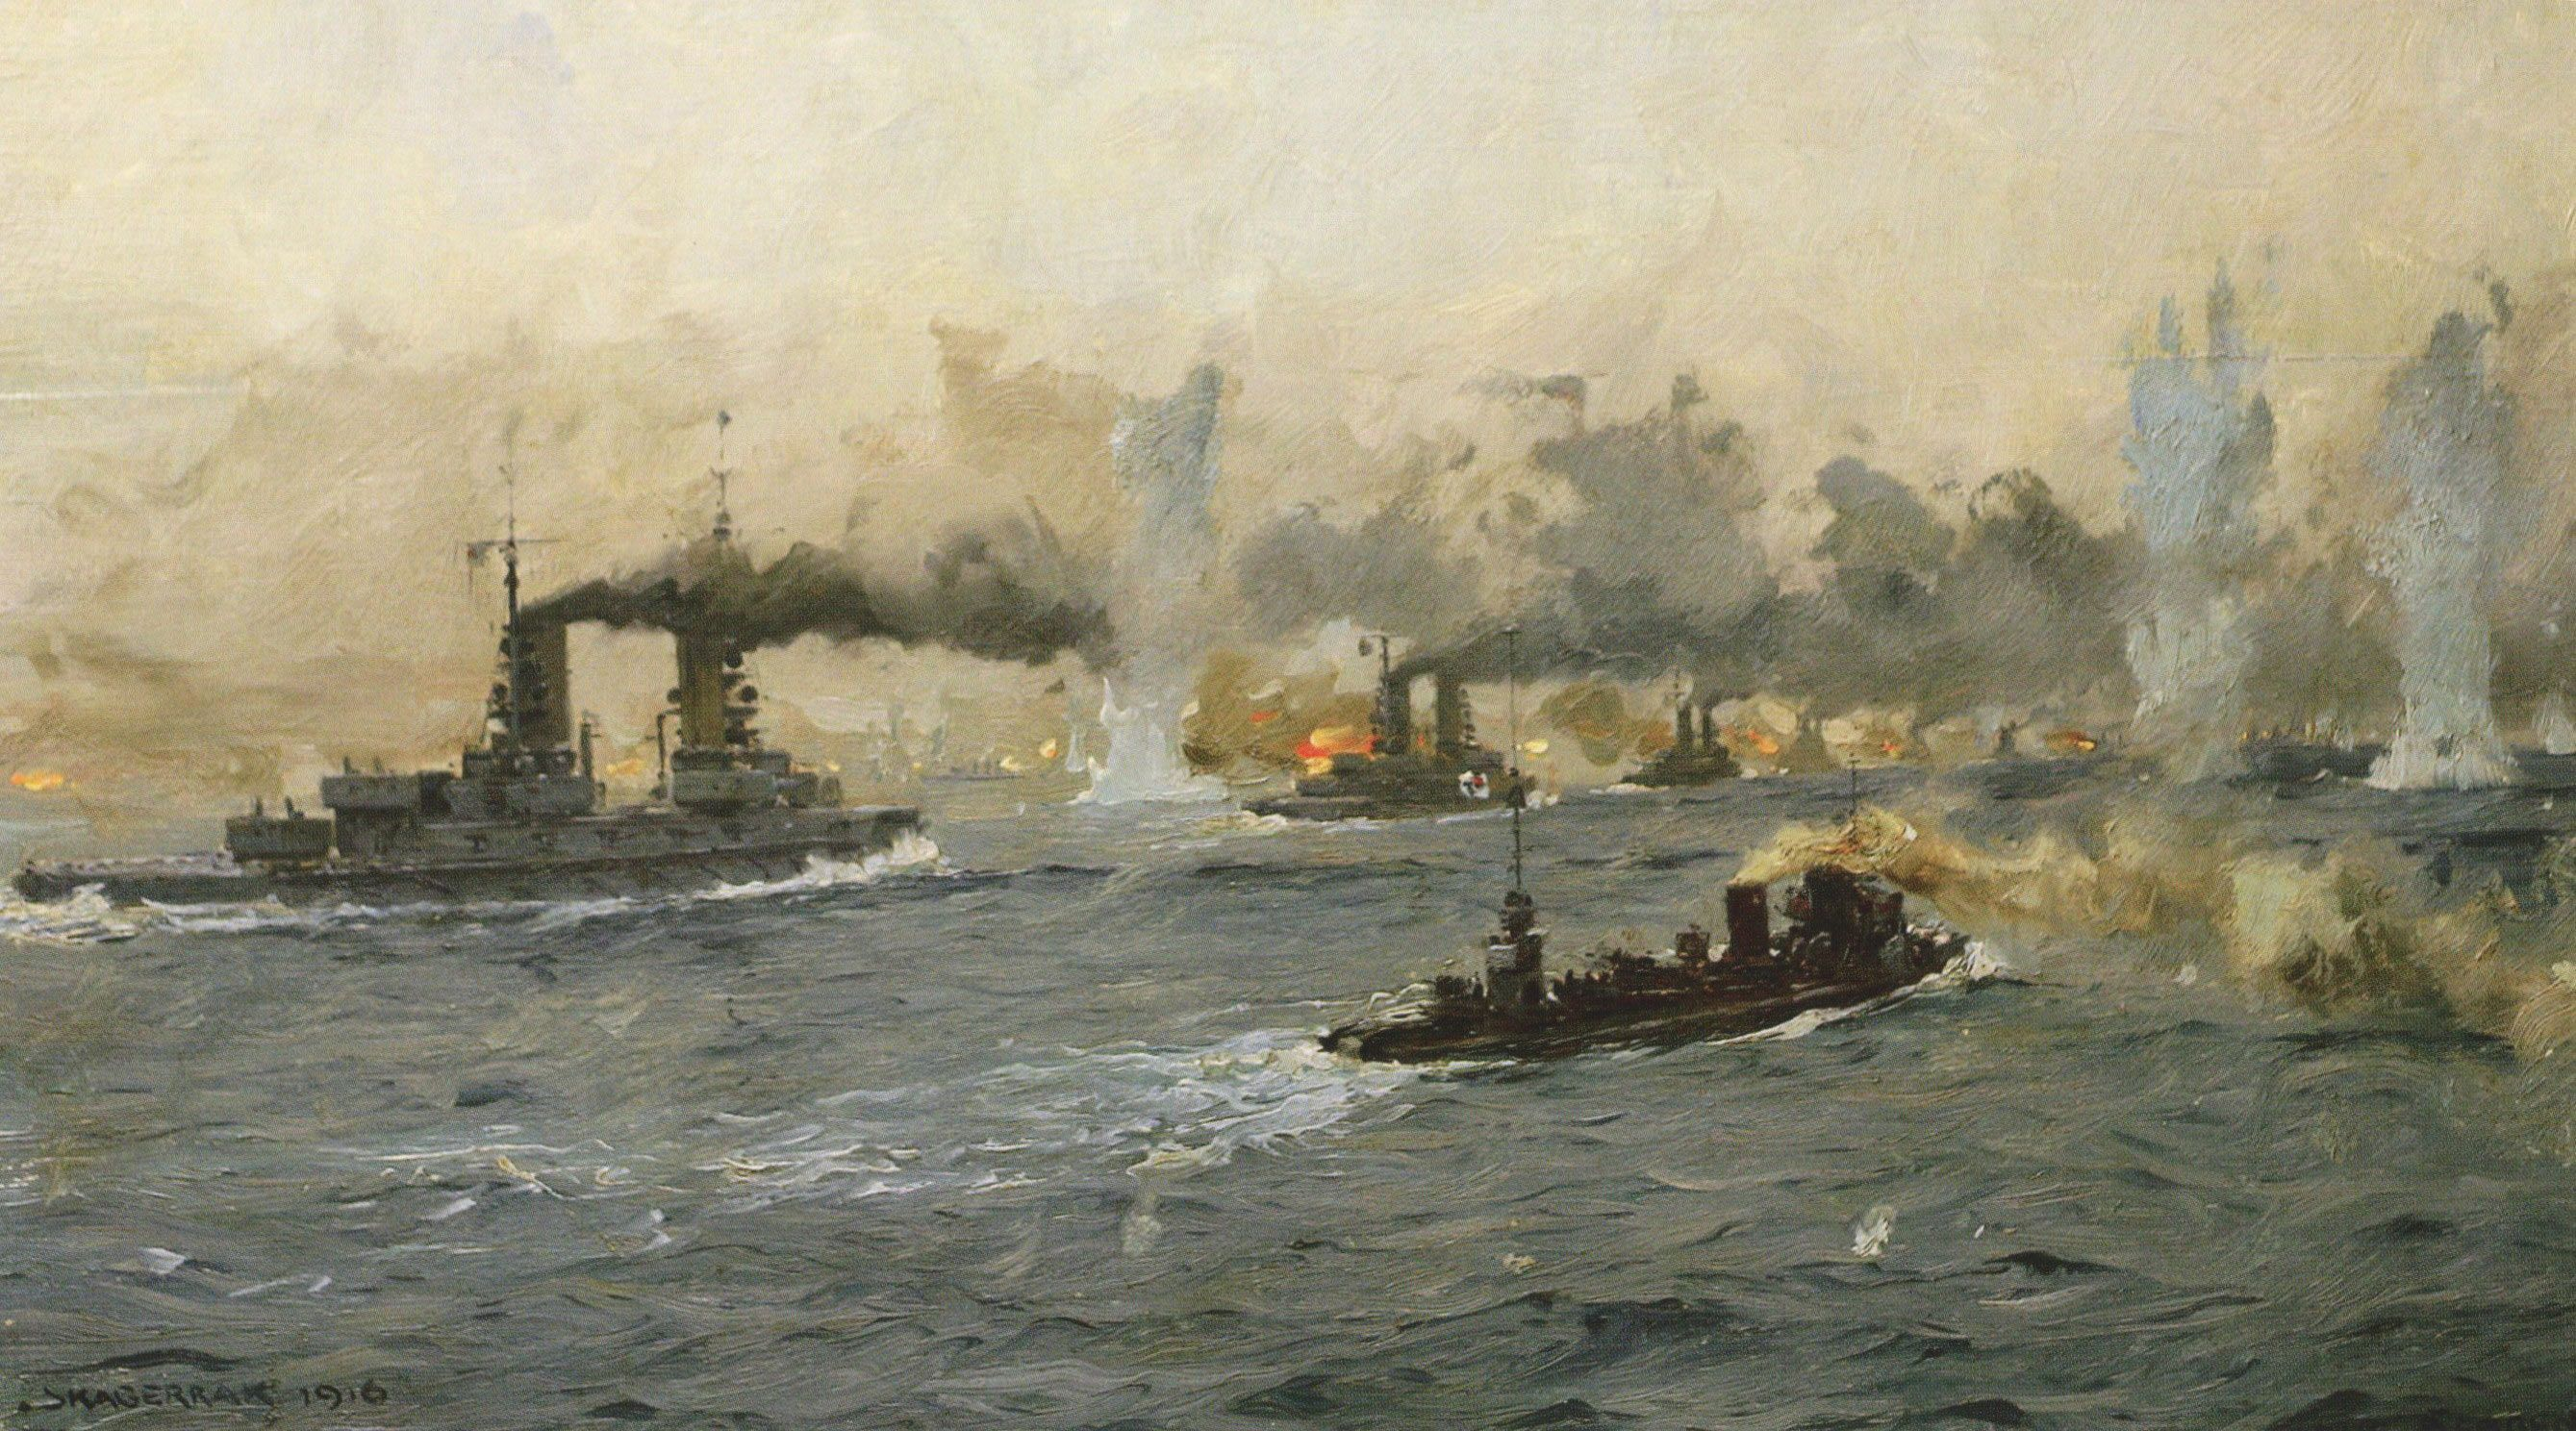 German Battleships And Destroyers In Action Battle Of Jutland 31st May Picture By Claus